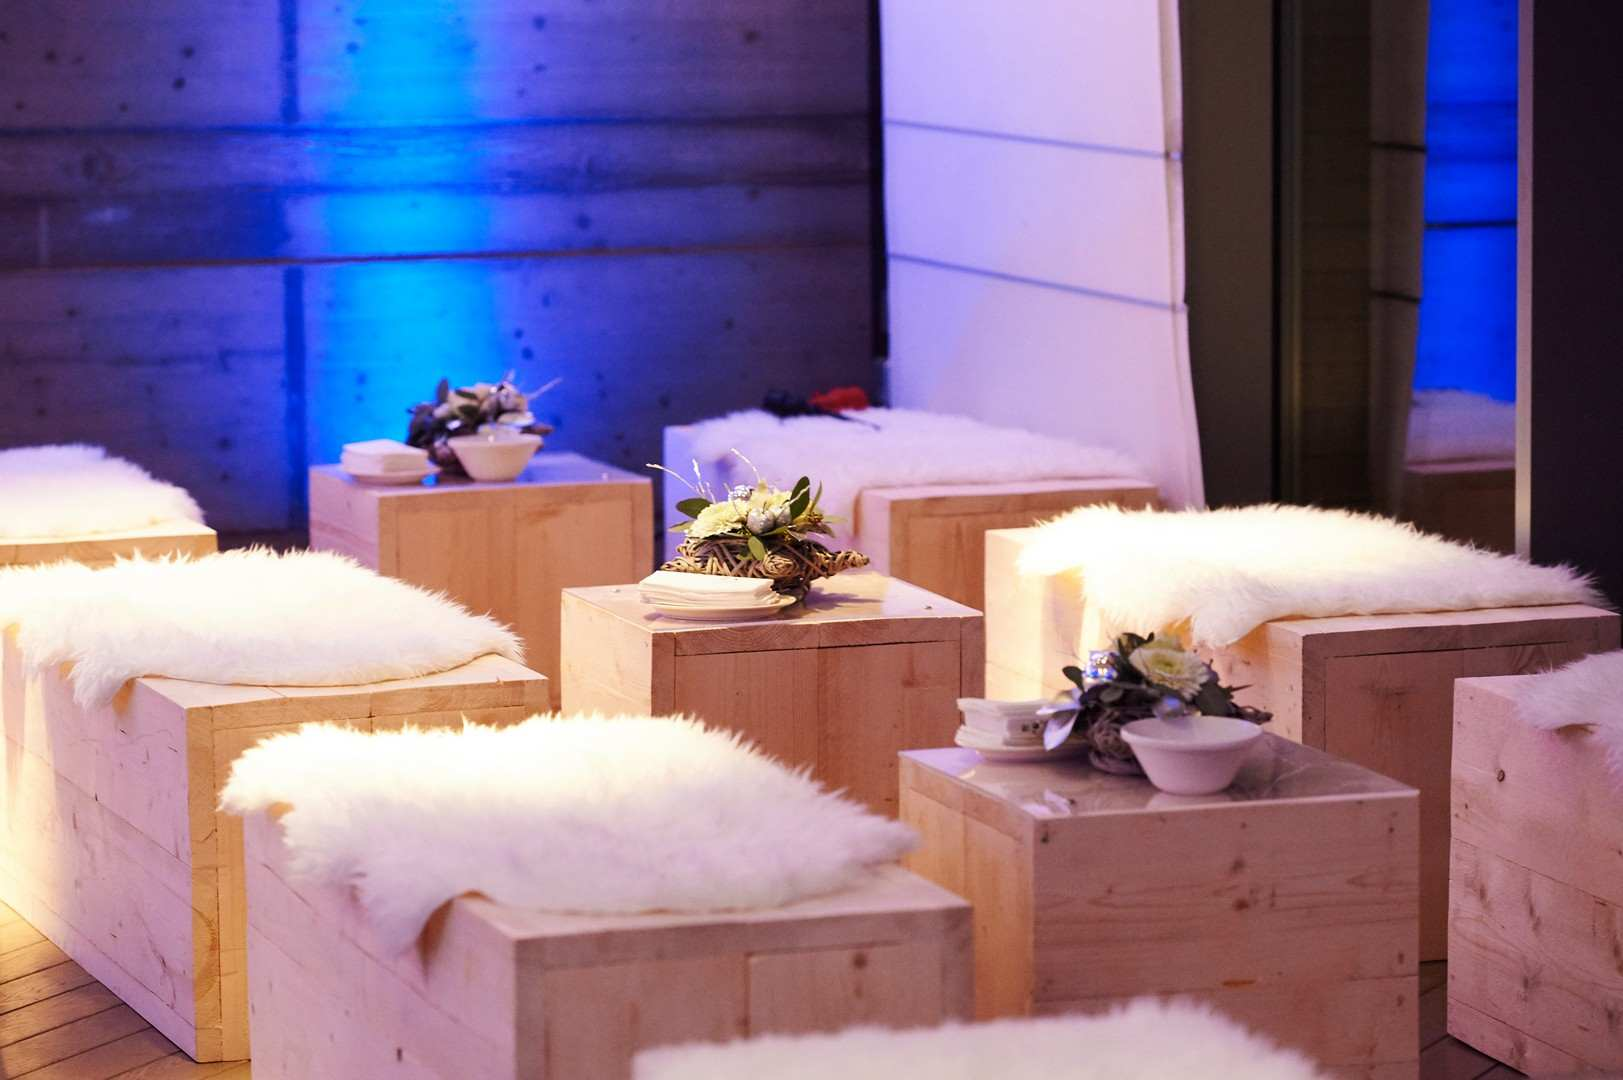 xmas-party-loyens-loeff-2015-decoration-carte-blanche-luxembourg